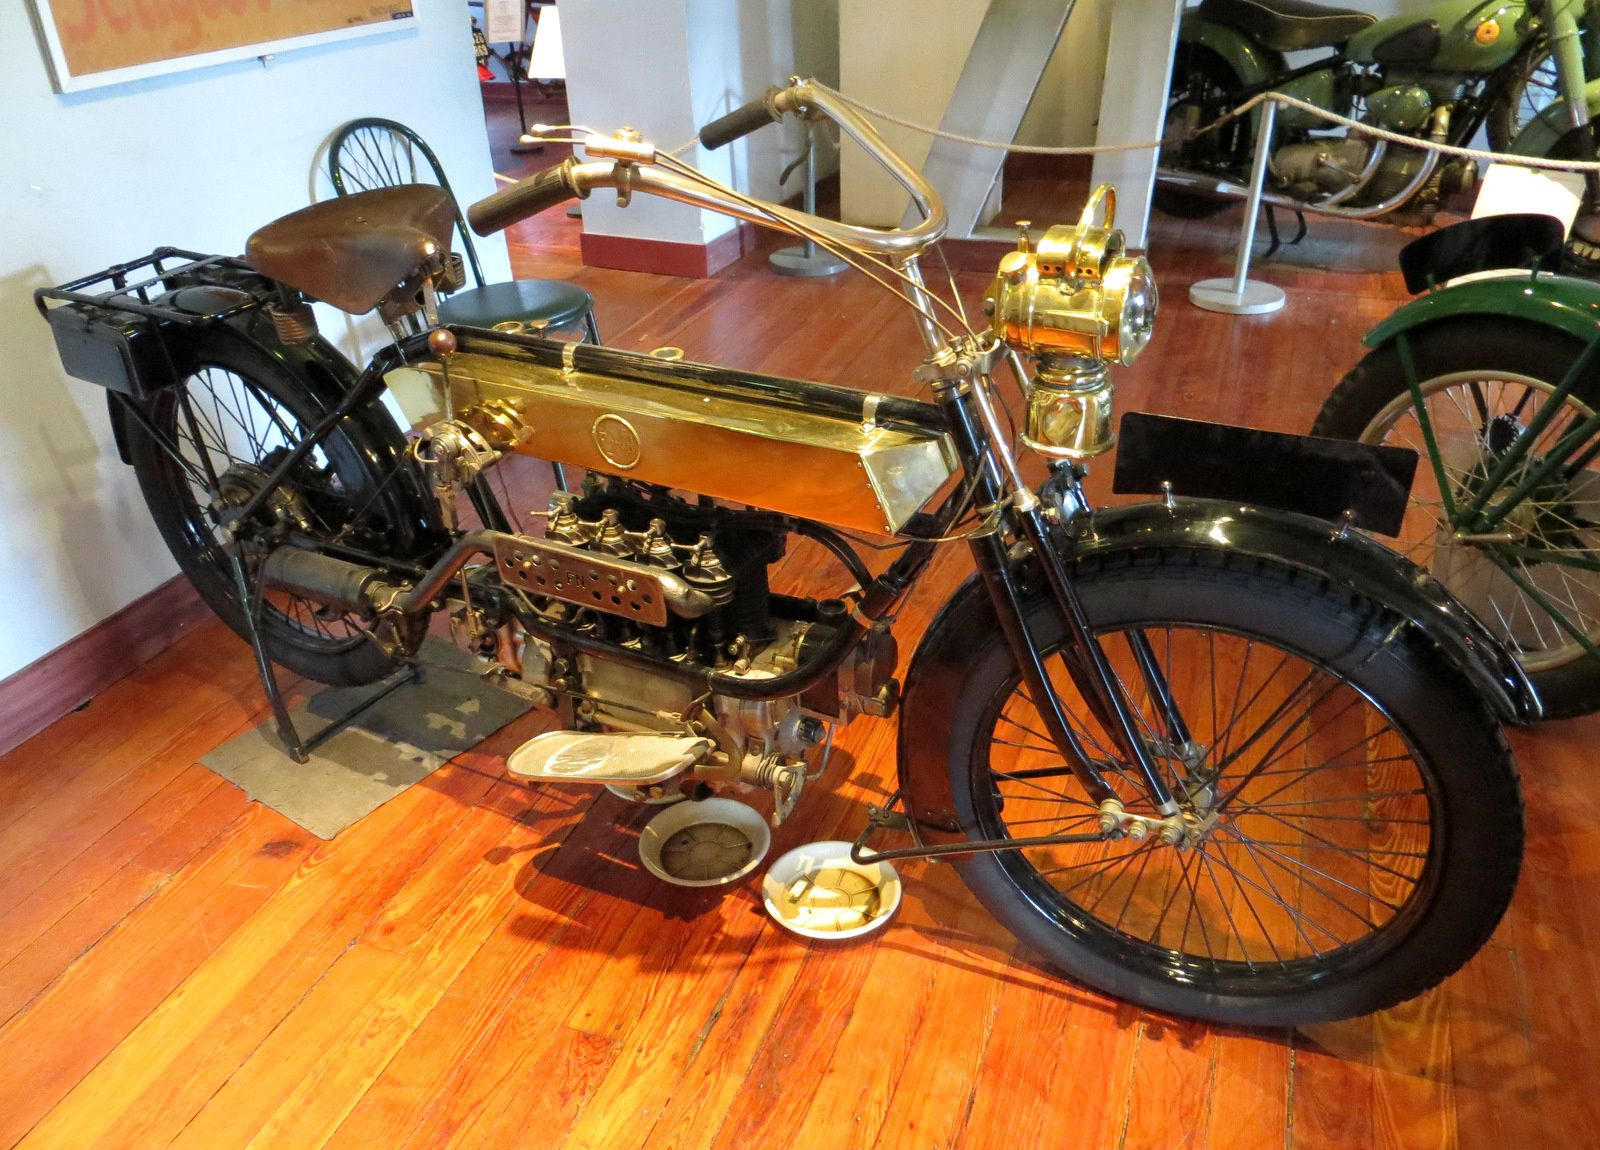 Fabrique Nationale Belge, moto 700cm3 à 4 cylindres de 1921